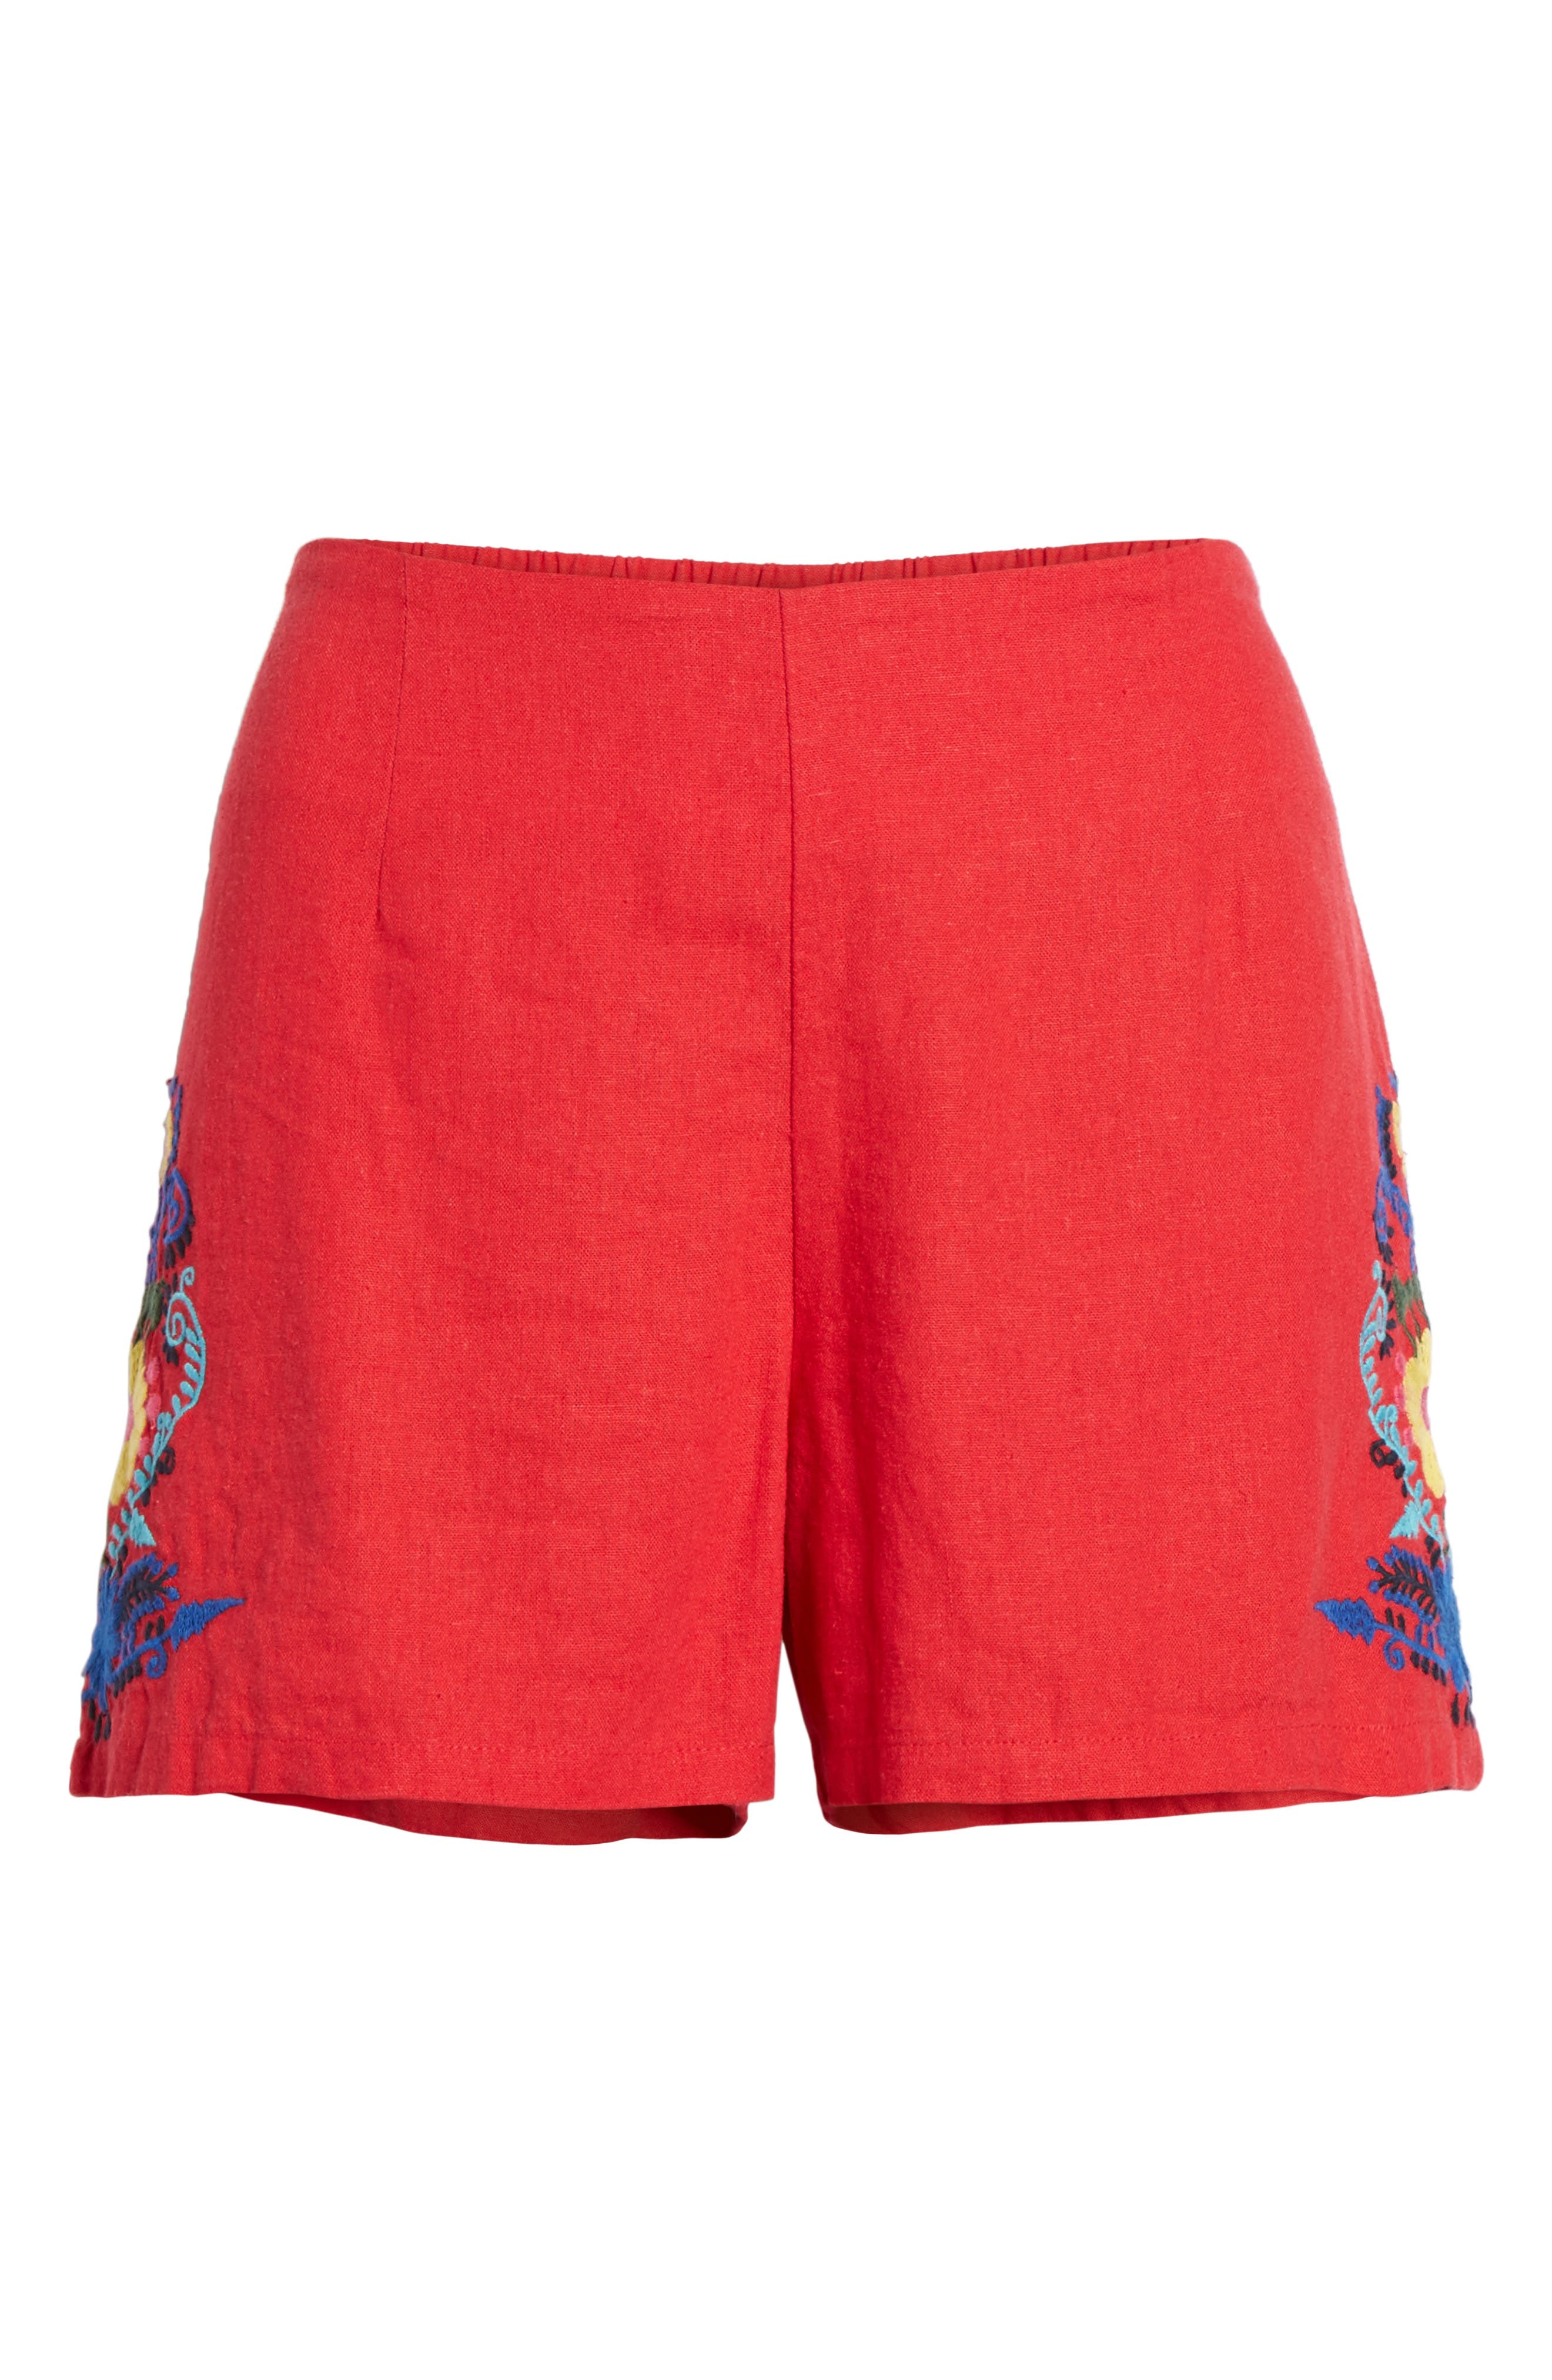 Embroidered Linen Blend Shorts,                             Alternate thumbnail 6, color,                             Red Lipstick